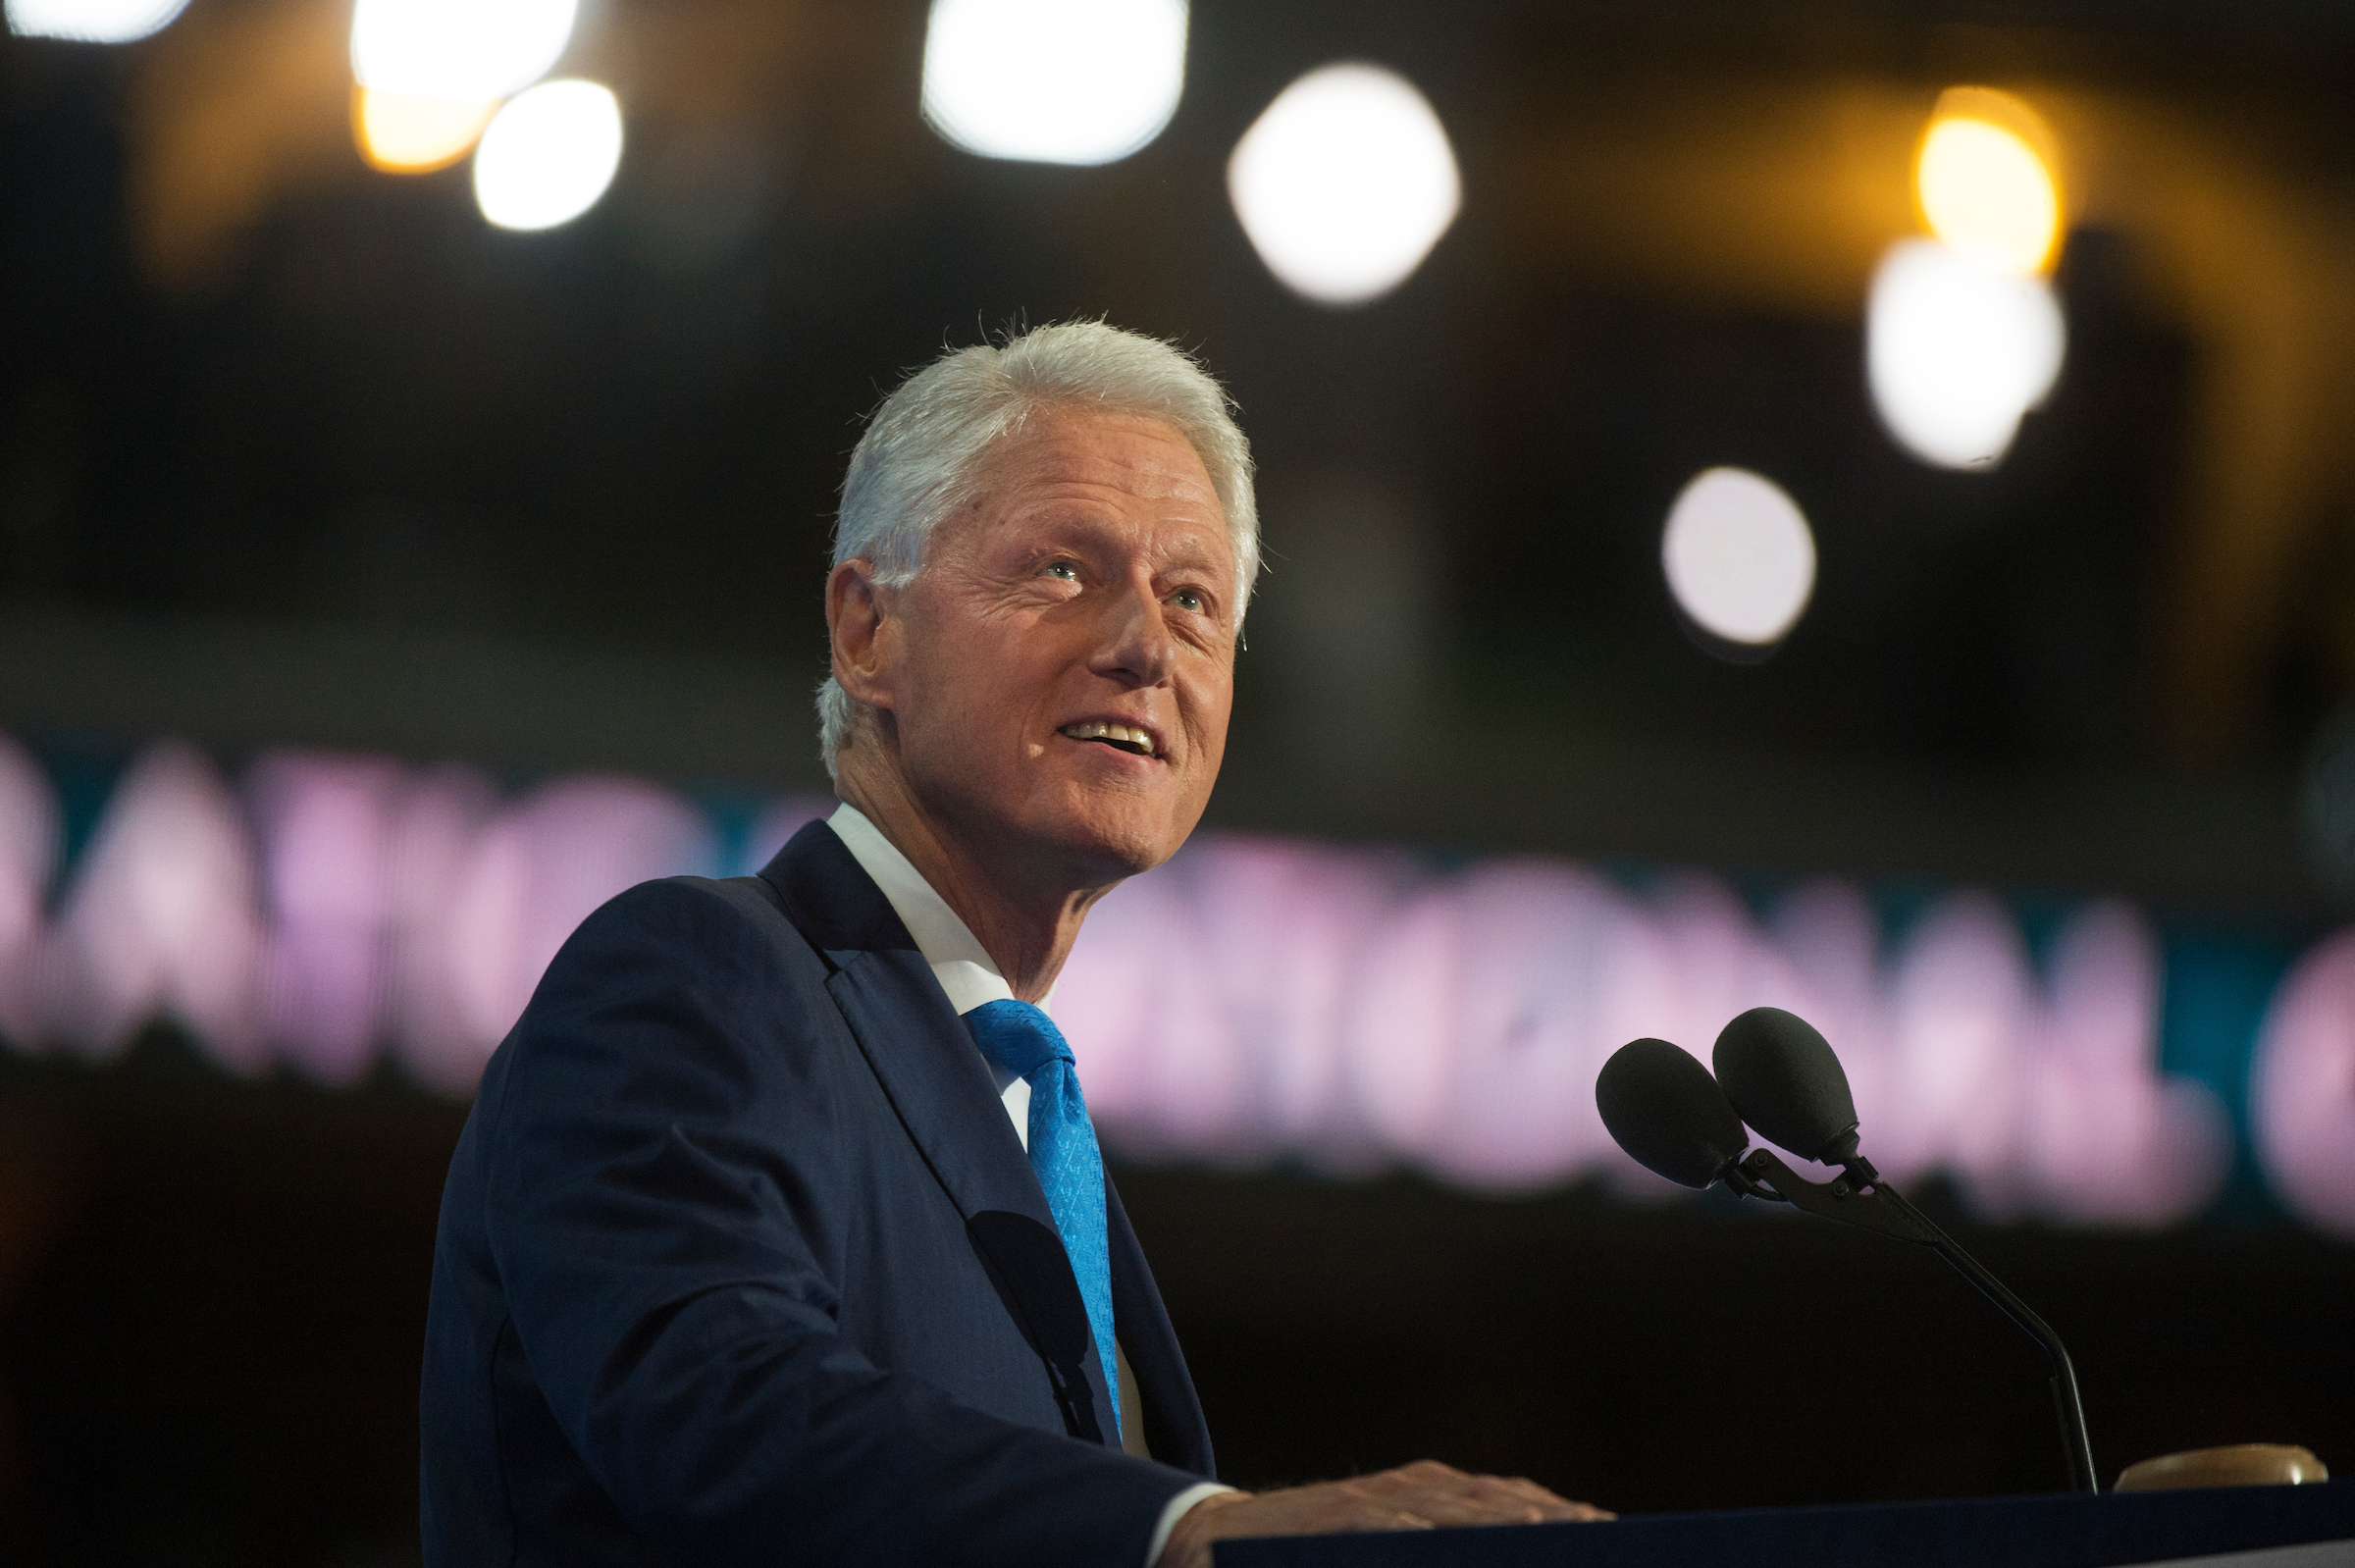 Former President Bill Clinton addresses the crowd in the Wells Fargo Center in Philadelphia, Pa., on the second day of the Democratic National Convention, July 26, 2016. (Photo By Tom Williams/CQ Roll Call)